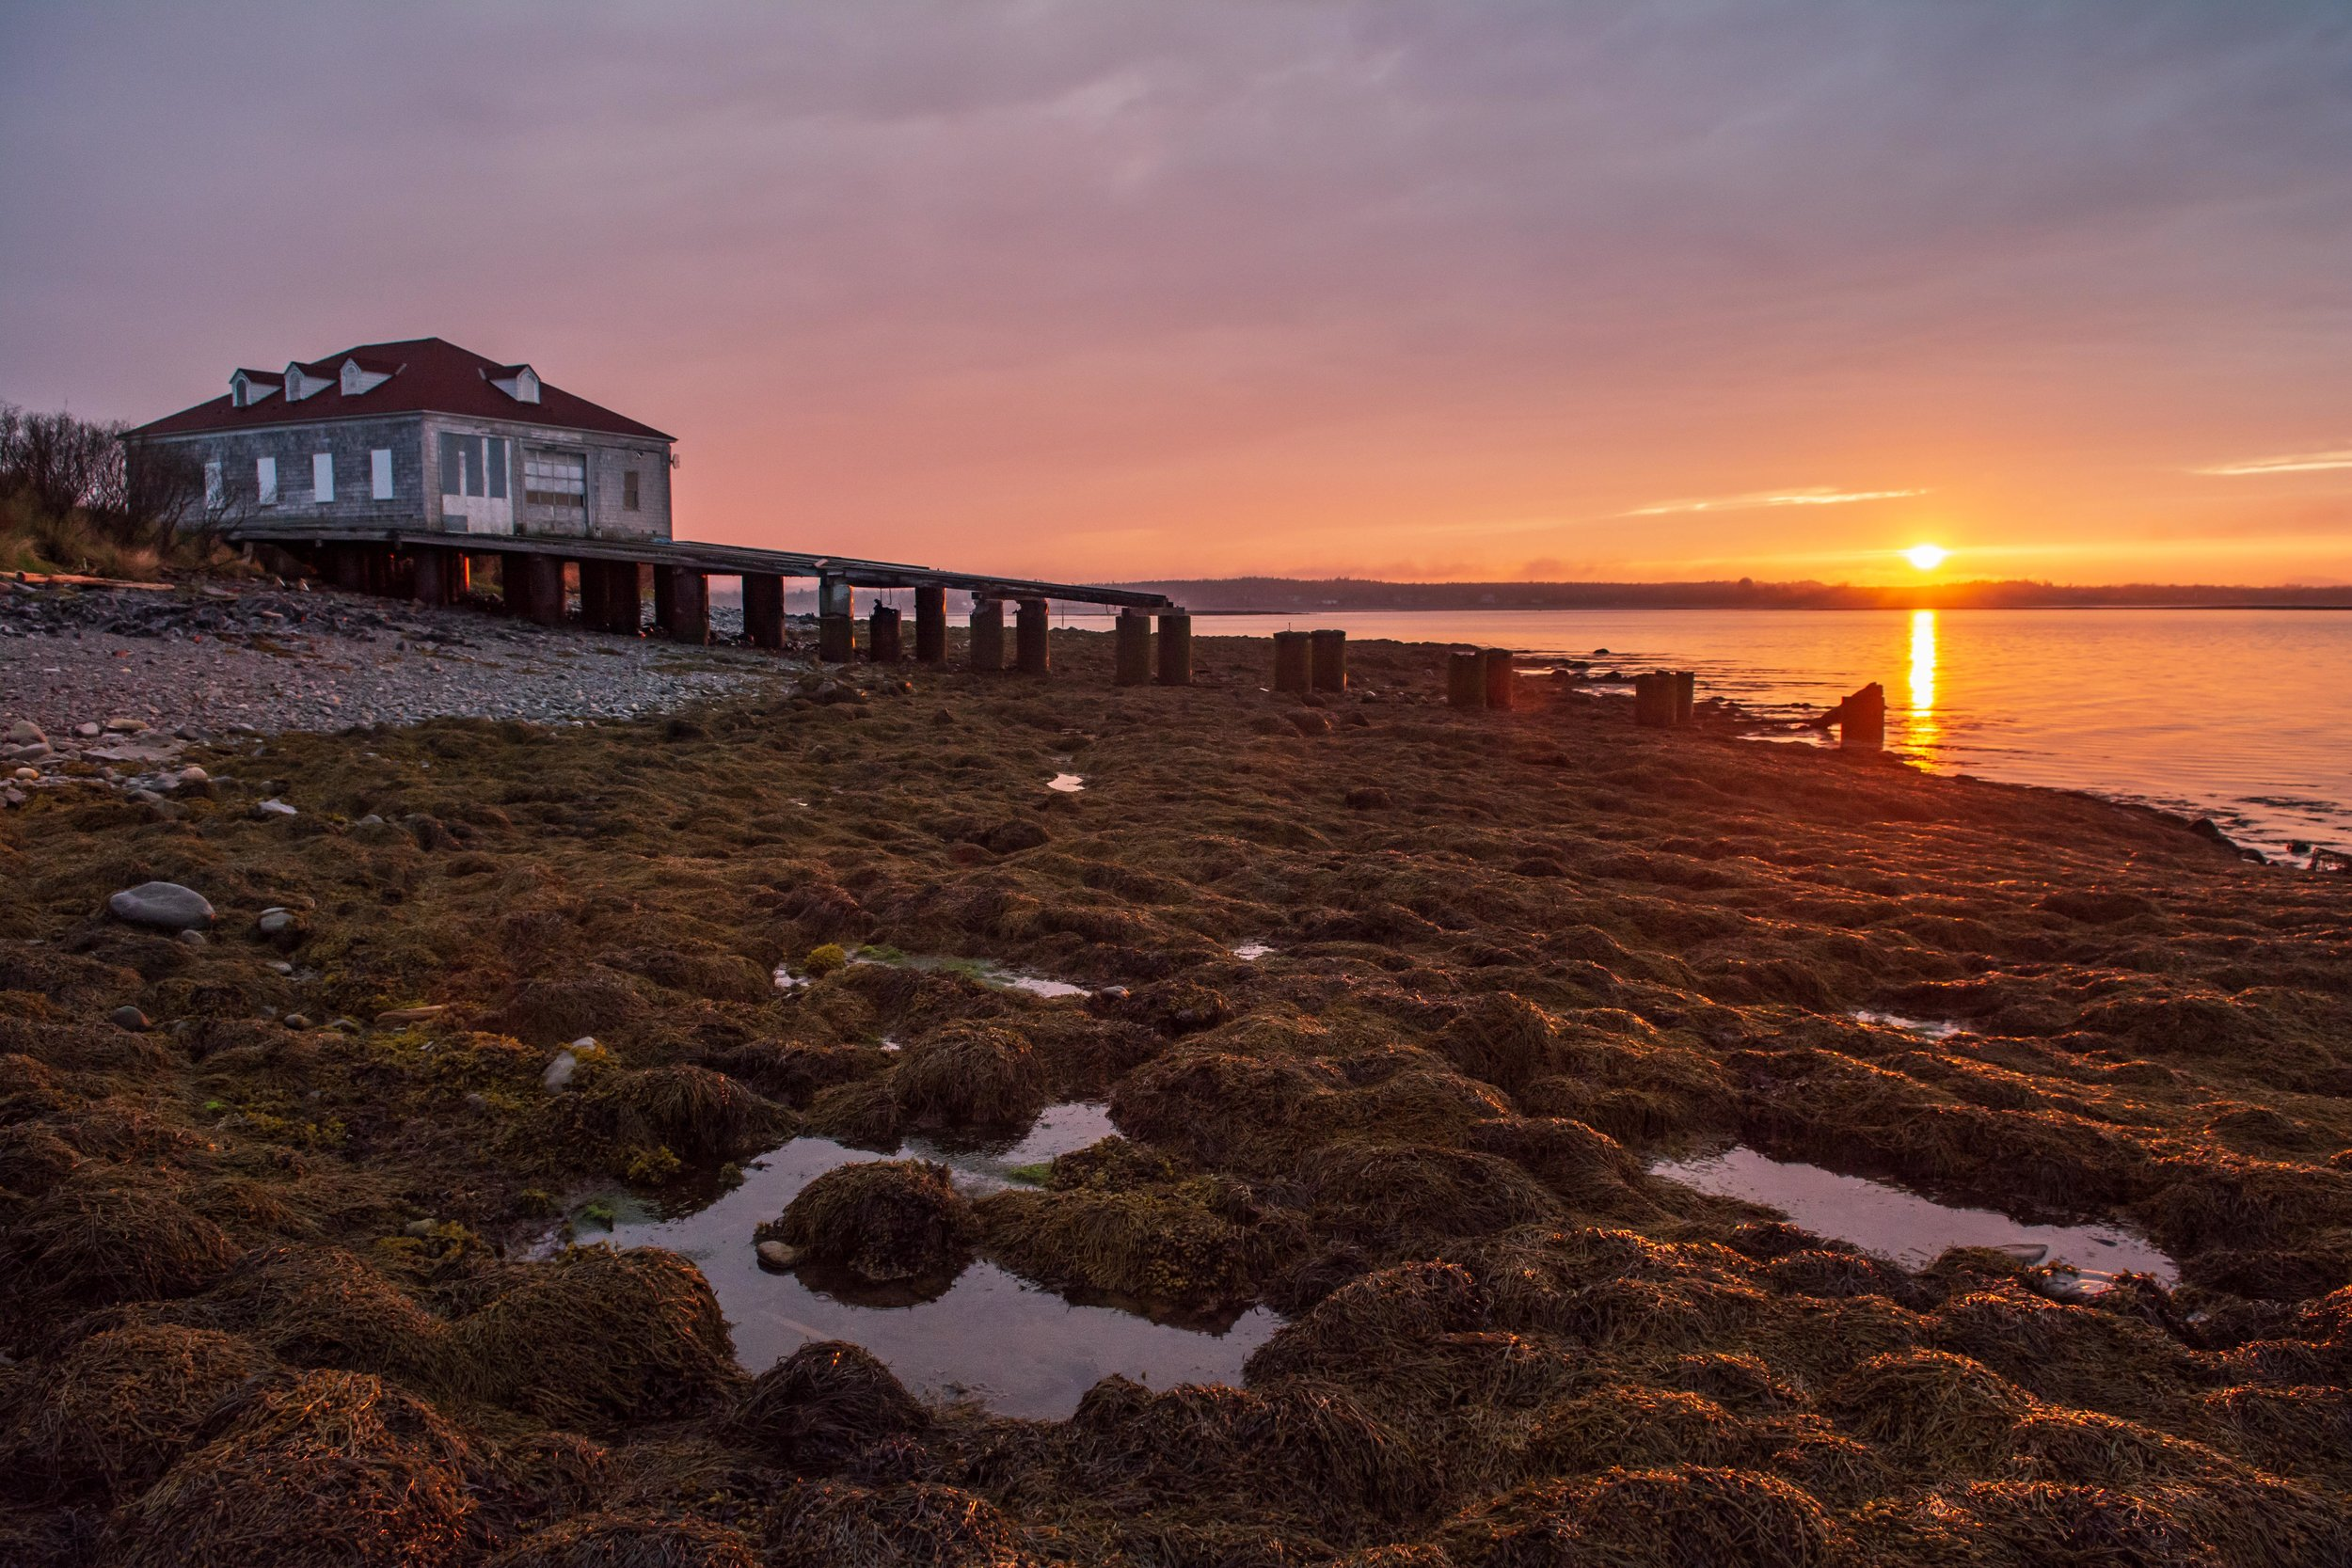 The sun sets at the West Quoddy Lifesaving Station, a former Coast Guard operation that served as the base of the Helmuth Lab for the first half of the trip.